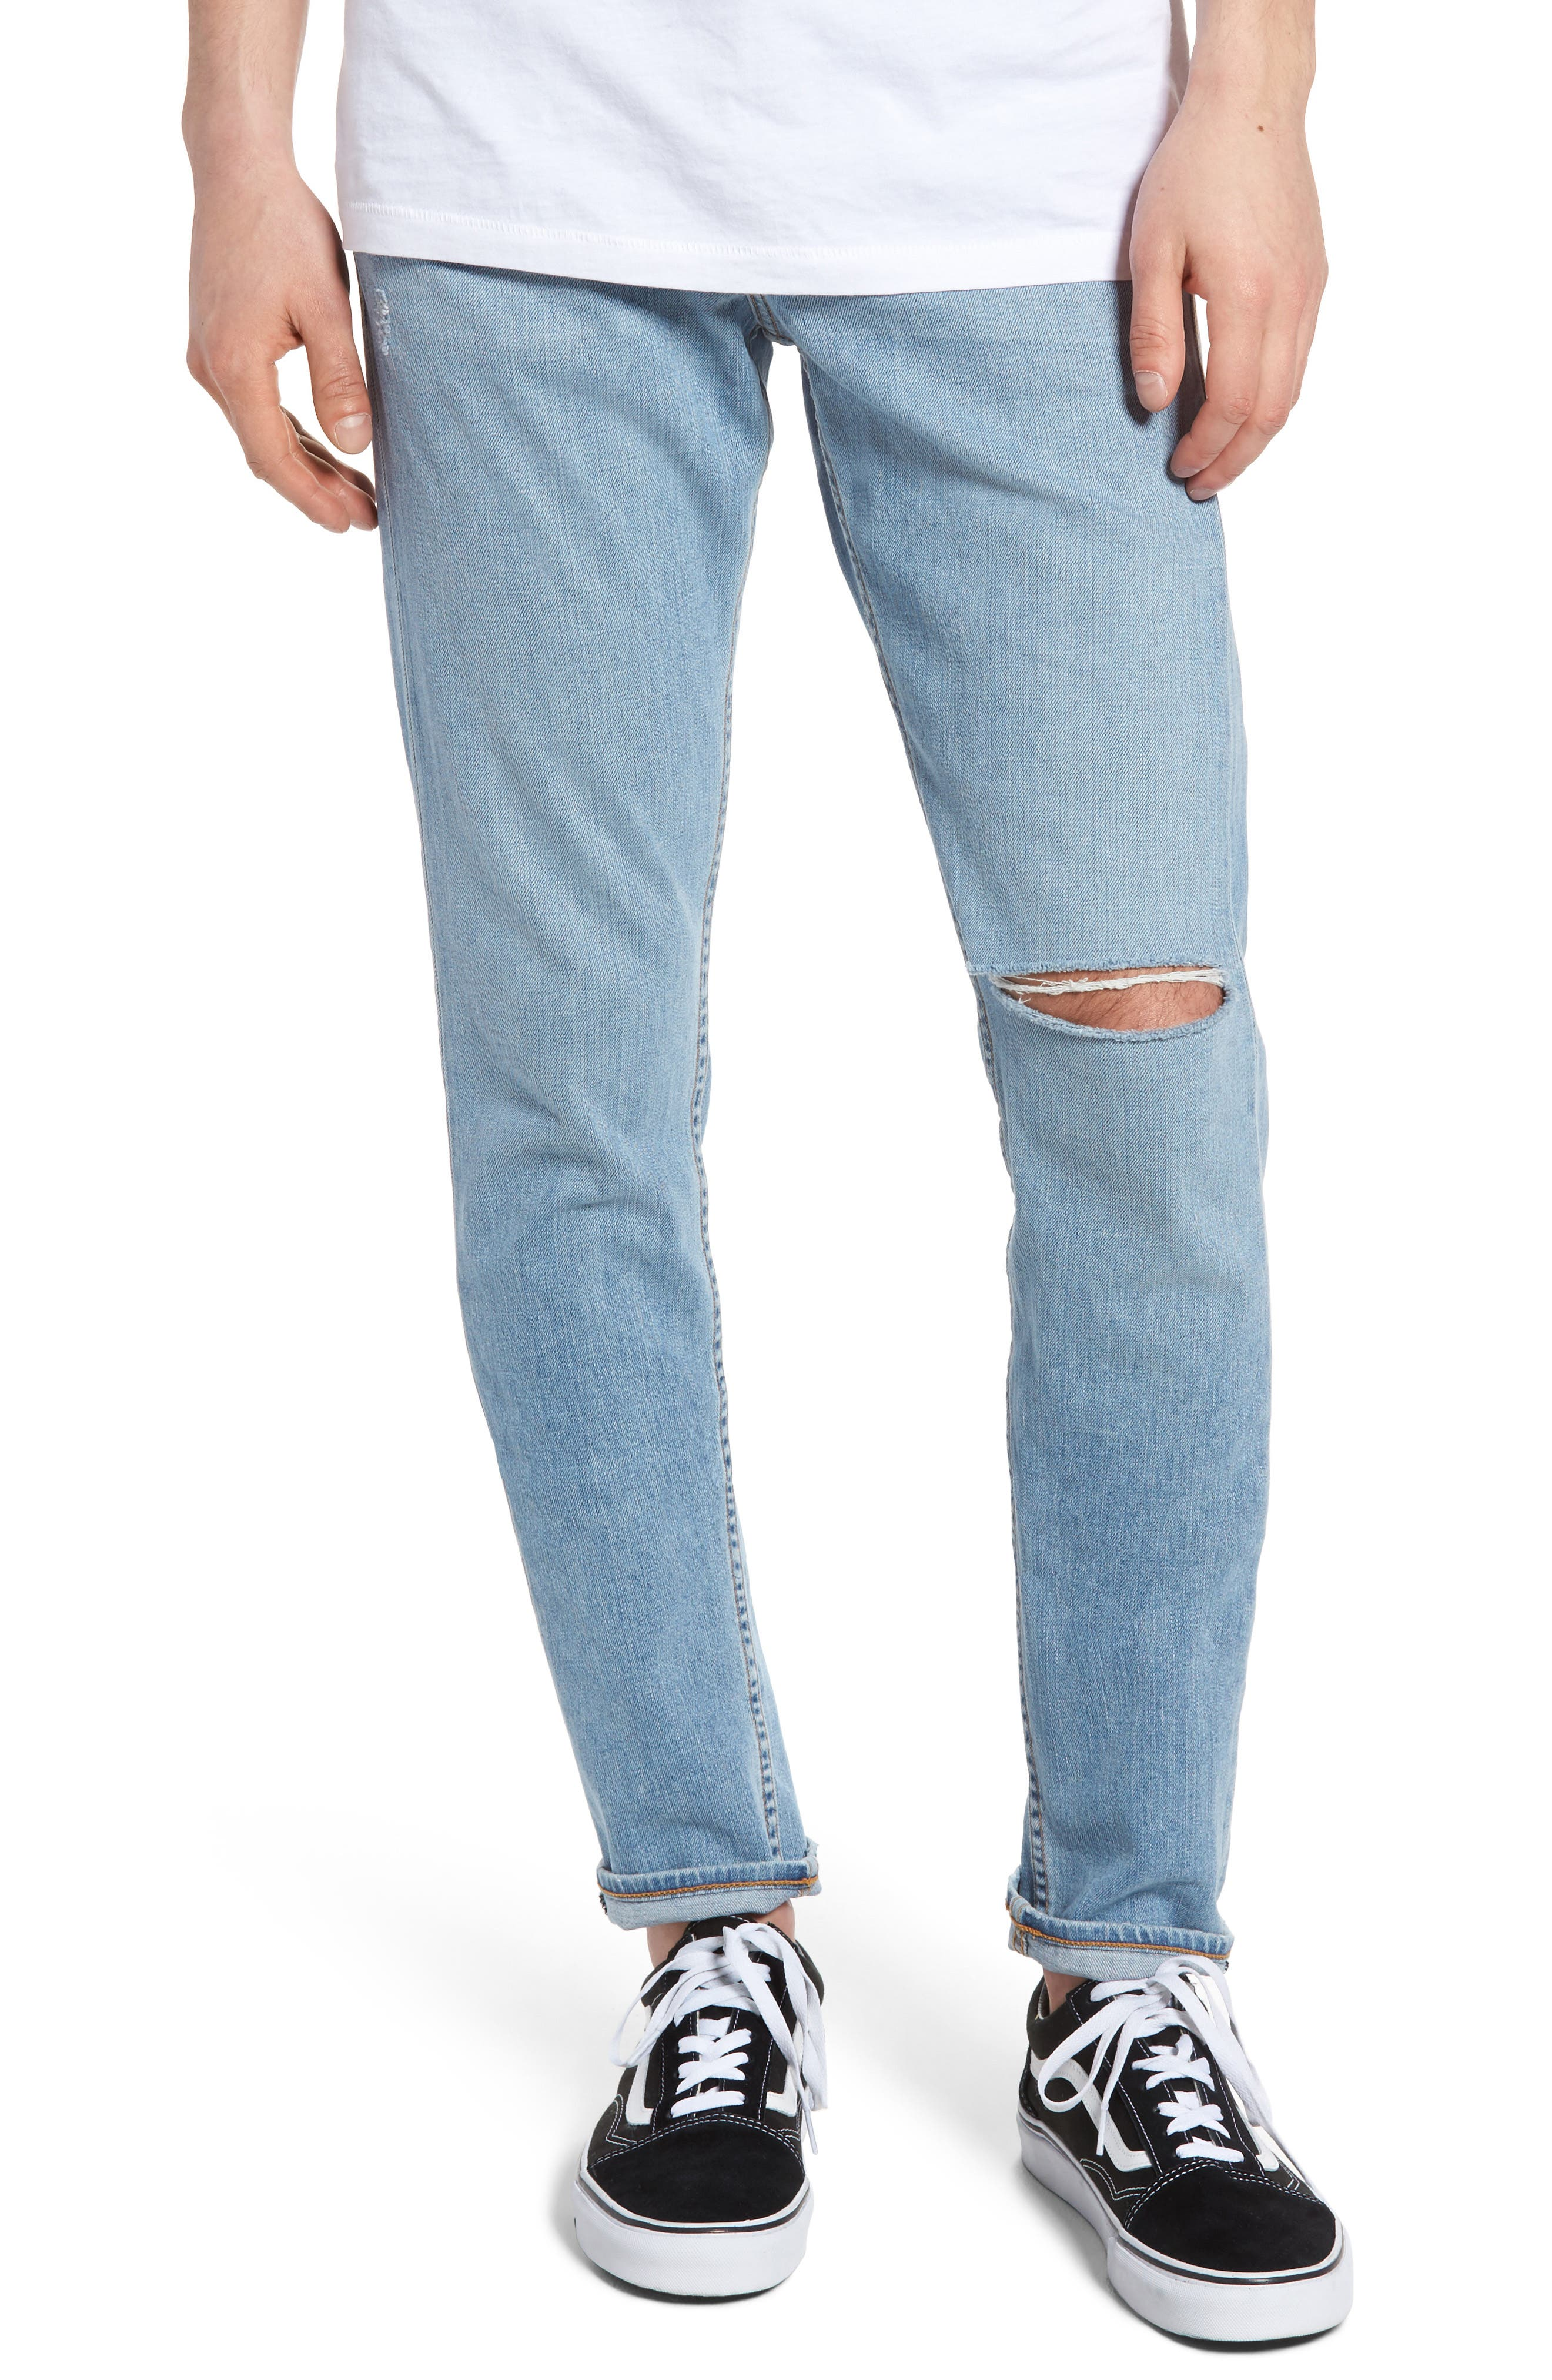 Fit 1 Skinny Fit Jeans,                         Main,                         color, 462